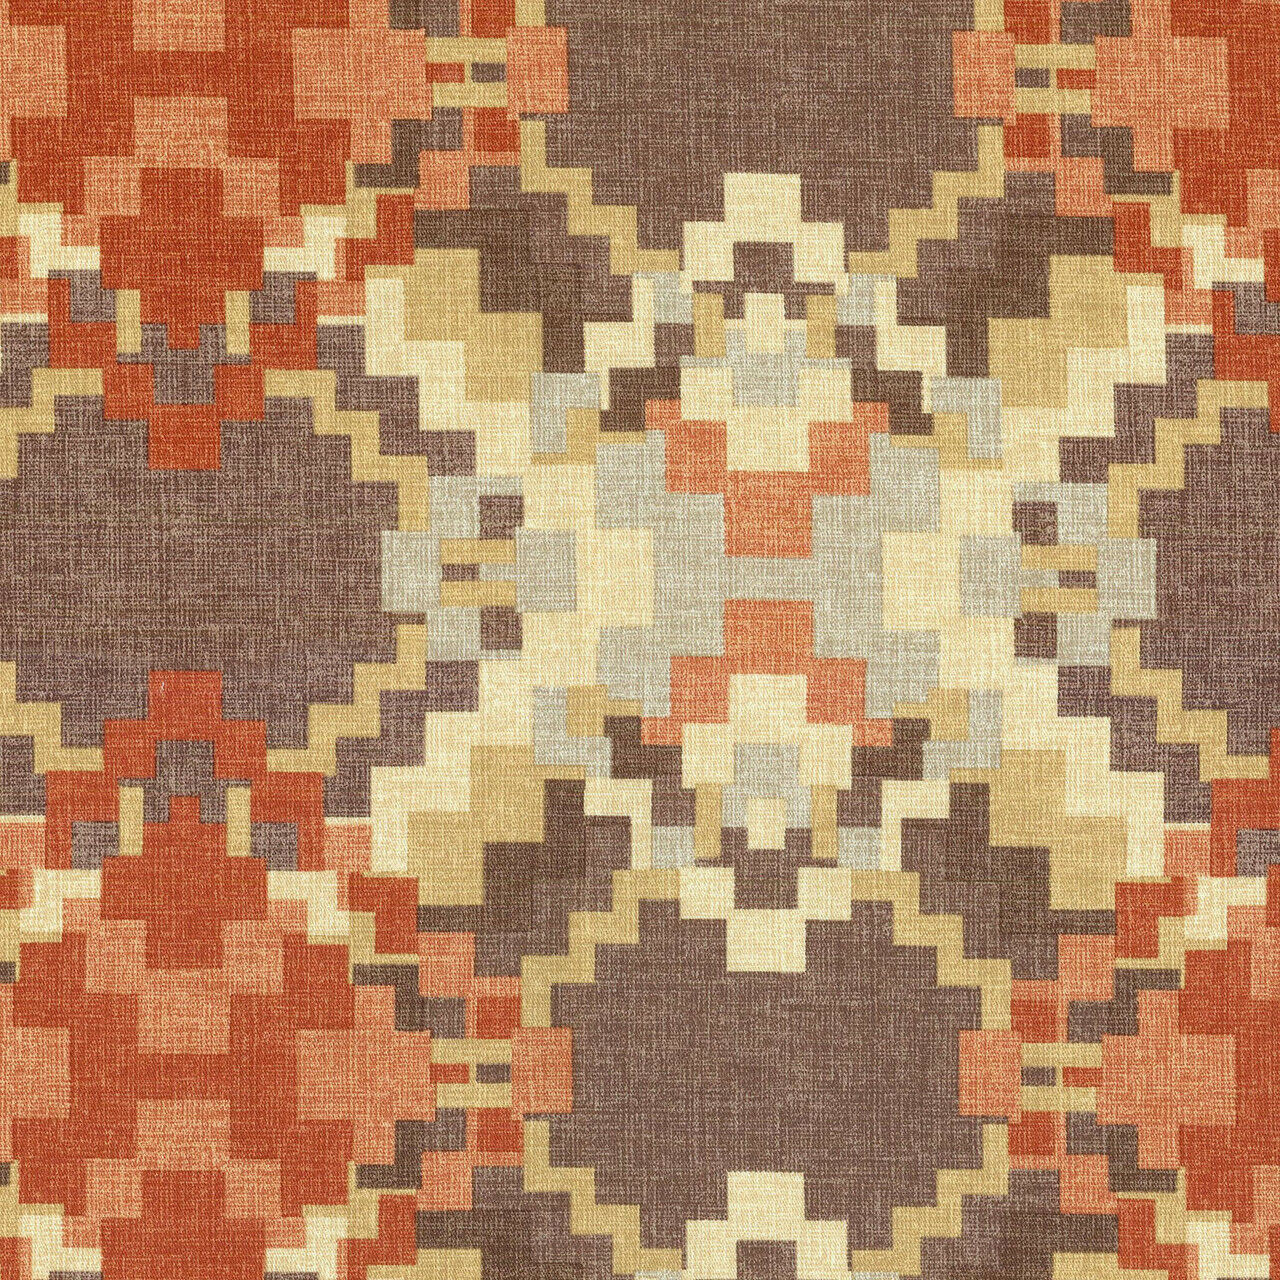 Upholstery Drapery Waverly Cabin Fever Heather Rustic Aztec